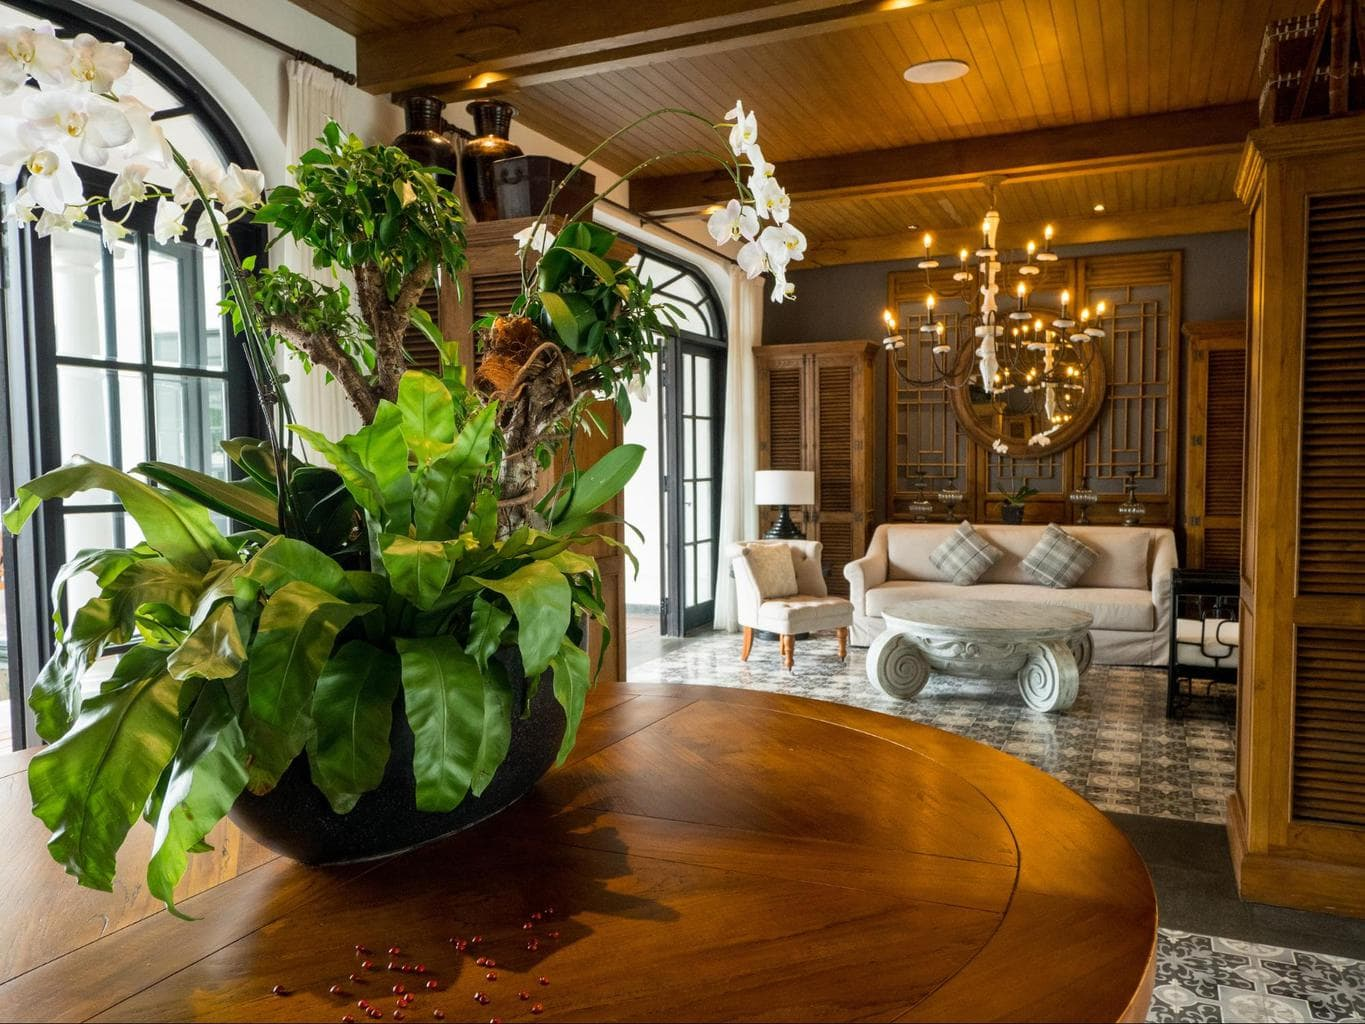 The reception area at The Sanchaya